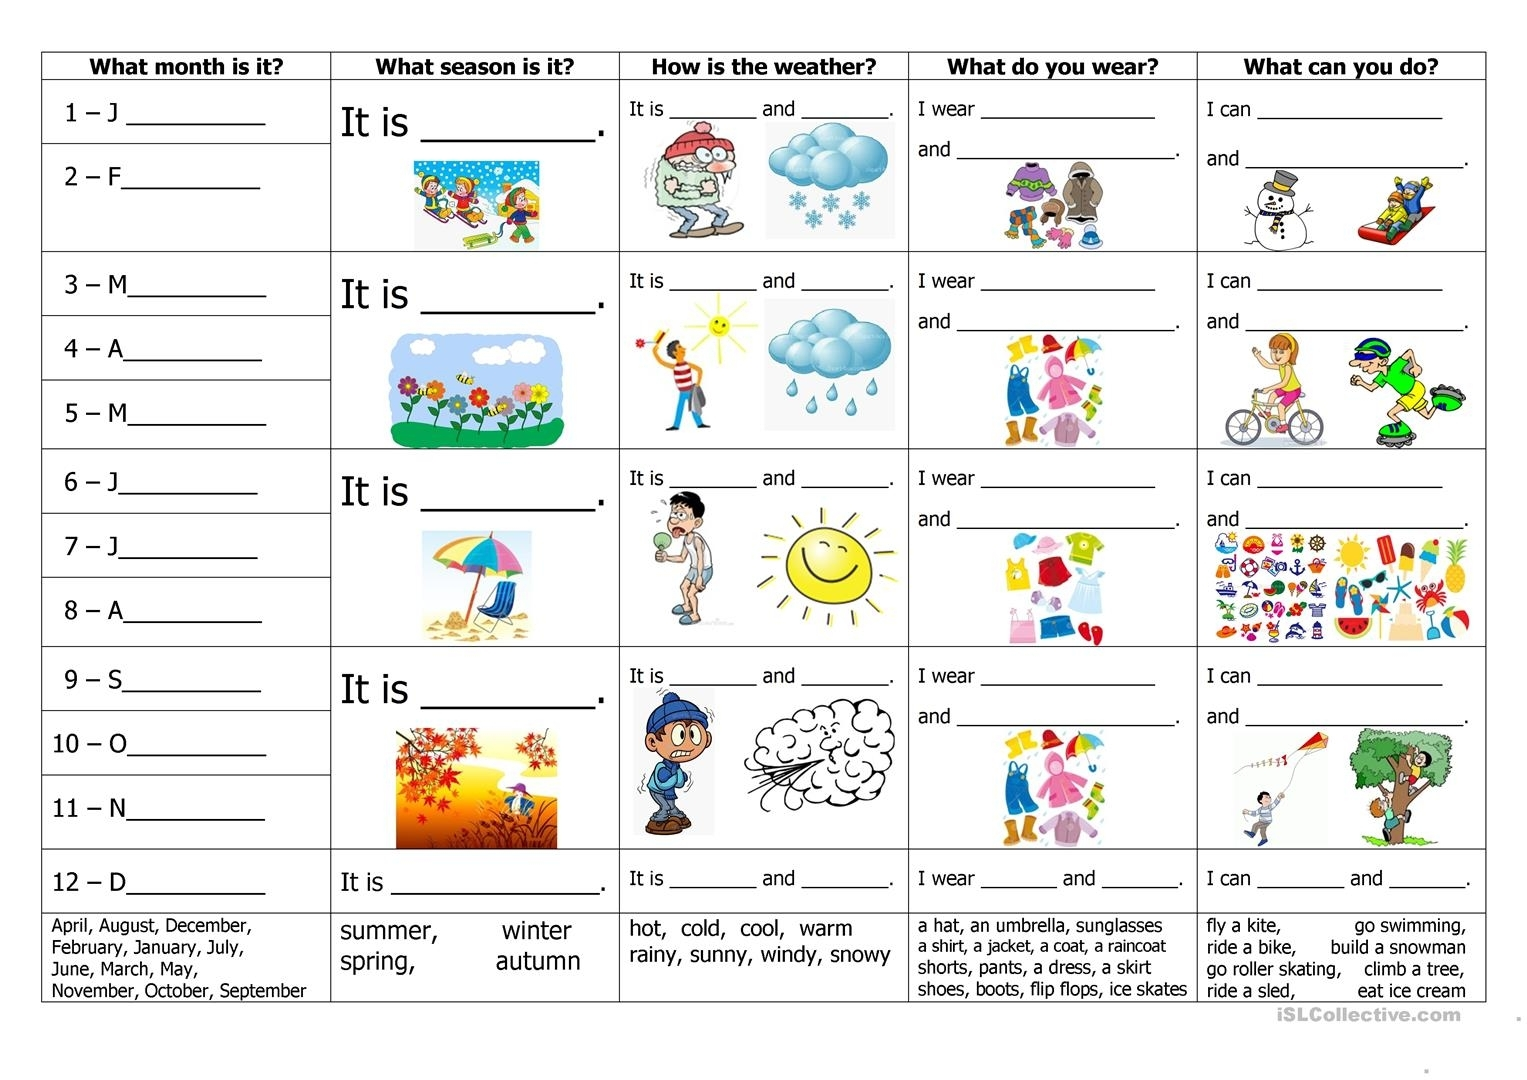 Months, Seasons, Weather, Clothes And Activities - English